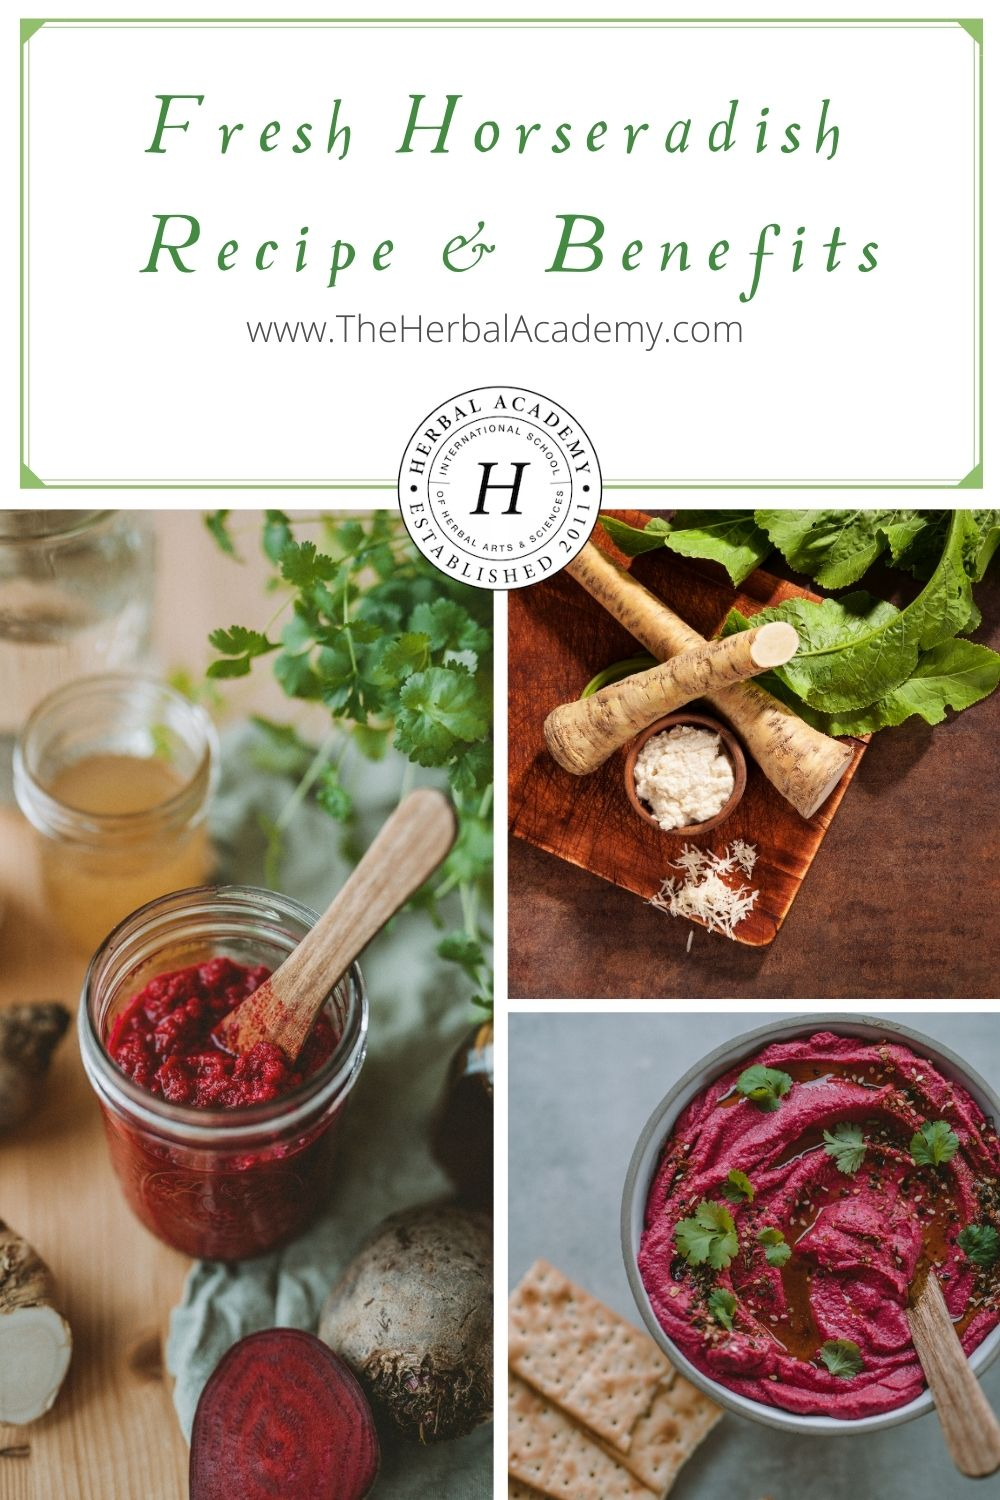 Winter Wellness: Fresh Horseradish Recipe & Benefits   Herbal Academy   This fresh horseradish recipe is a wonderful and simple condiment for winter wellness, especially in regards to sinus support!